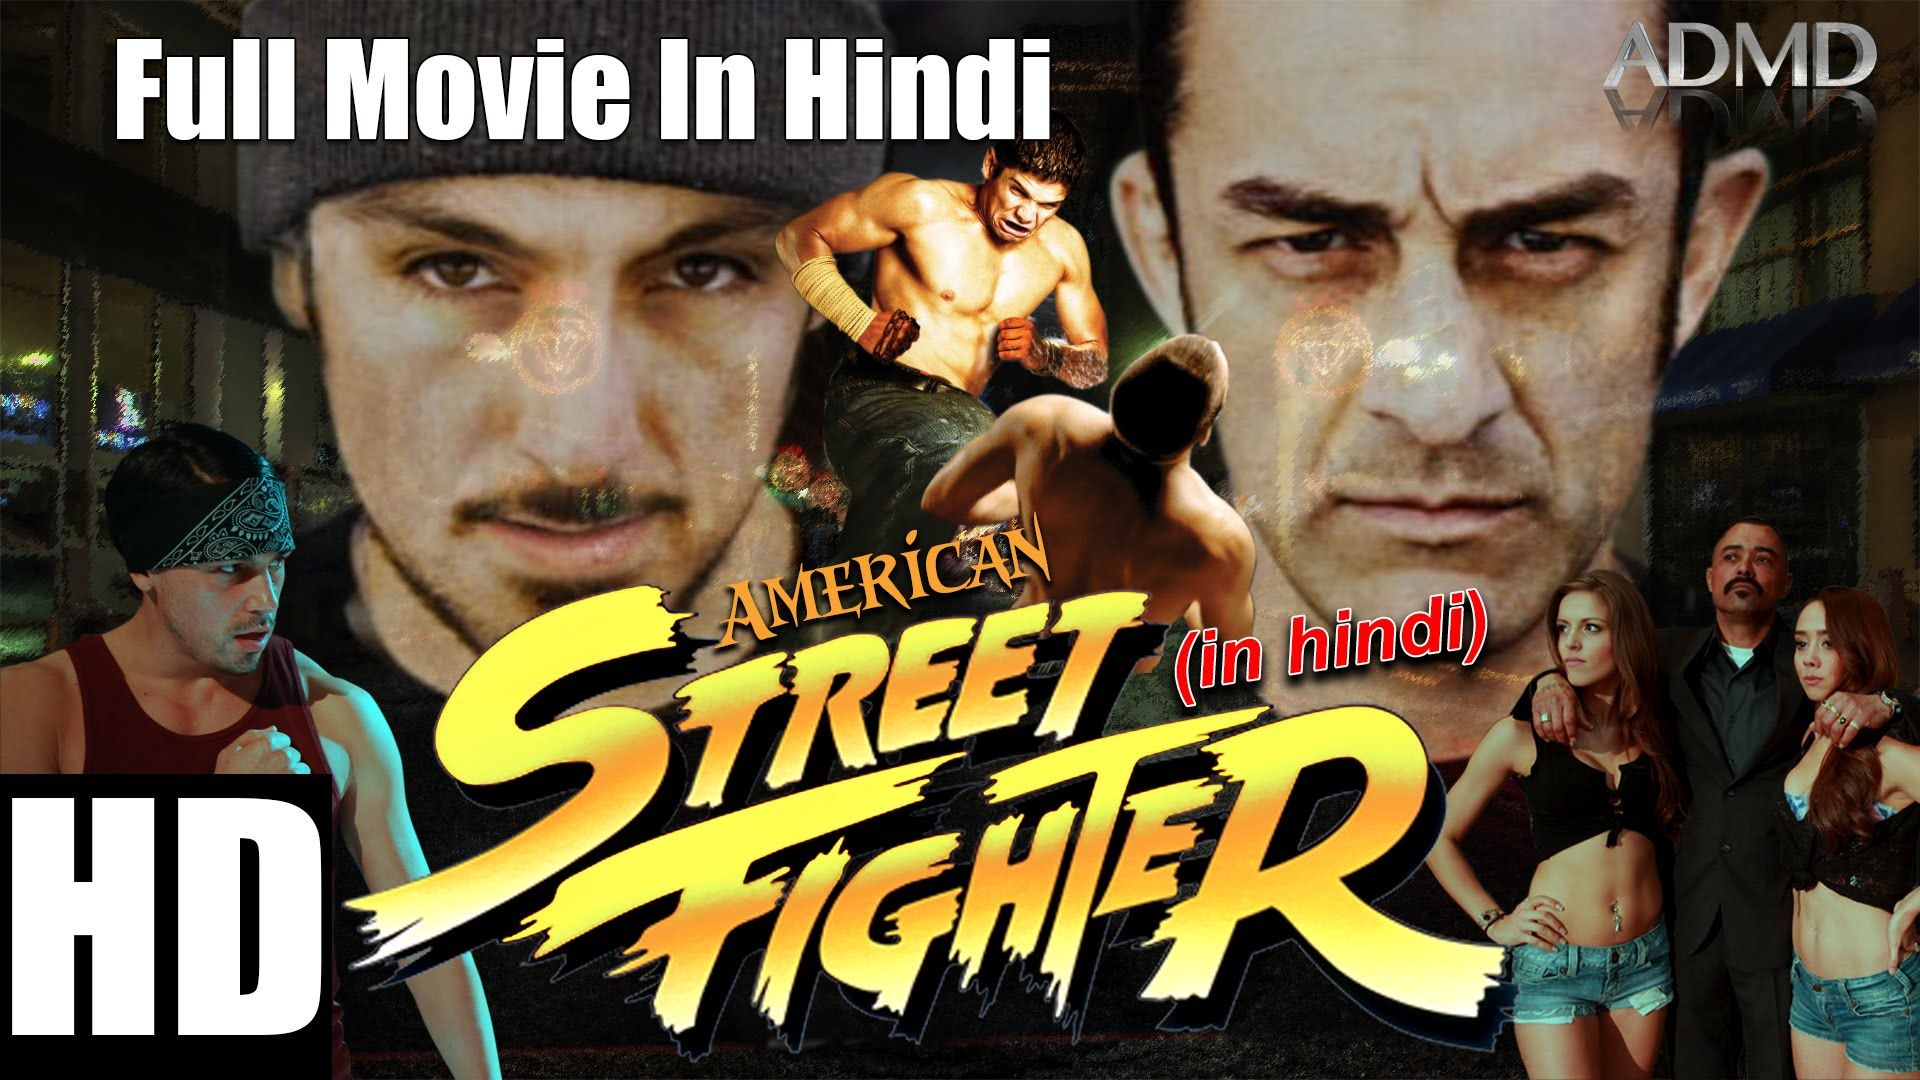 English Action Movies In Hindi Dubbed